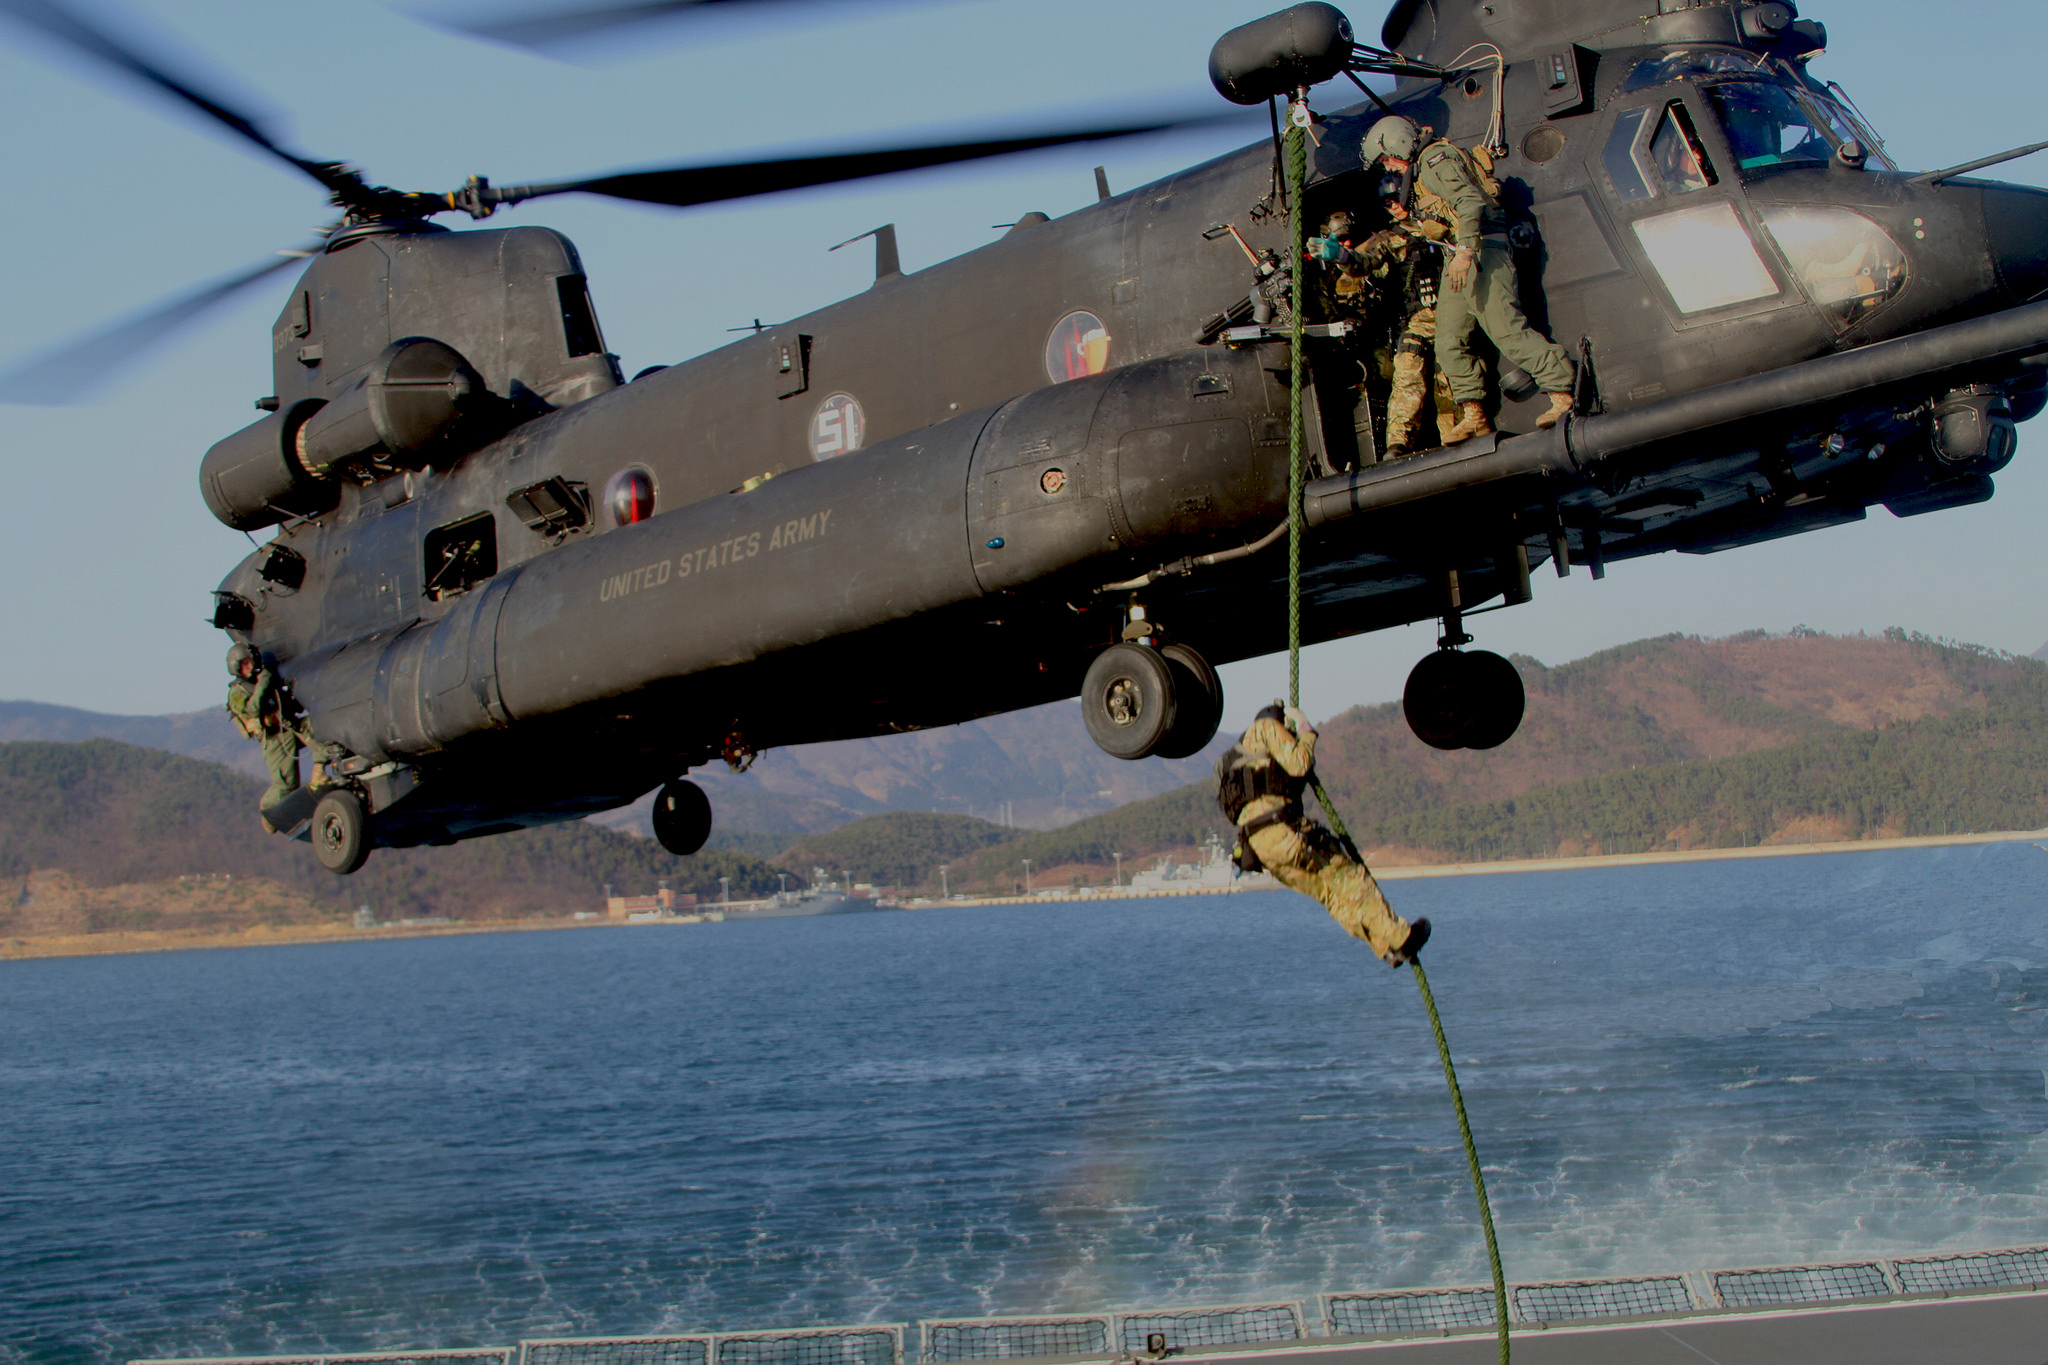 A U.S. Navy SEAL with Naval Special Warfare Group 1 fast ropes from an Army MH-47 Chinook helicopter onto the aft deck of the fast combat support ship ROKS Hwacheon (AOE 59) March 20, 2012, in Jinhae Harbor, South Korea, during Foal Eagle 2012. (Sgt. Aaron Rognstad/Army)